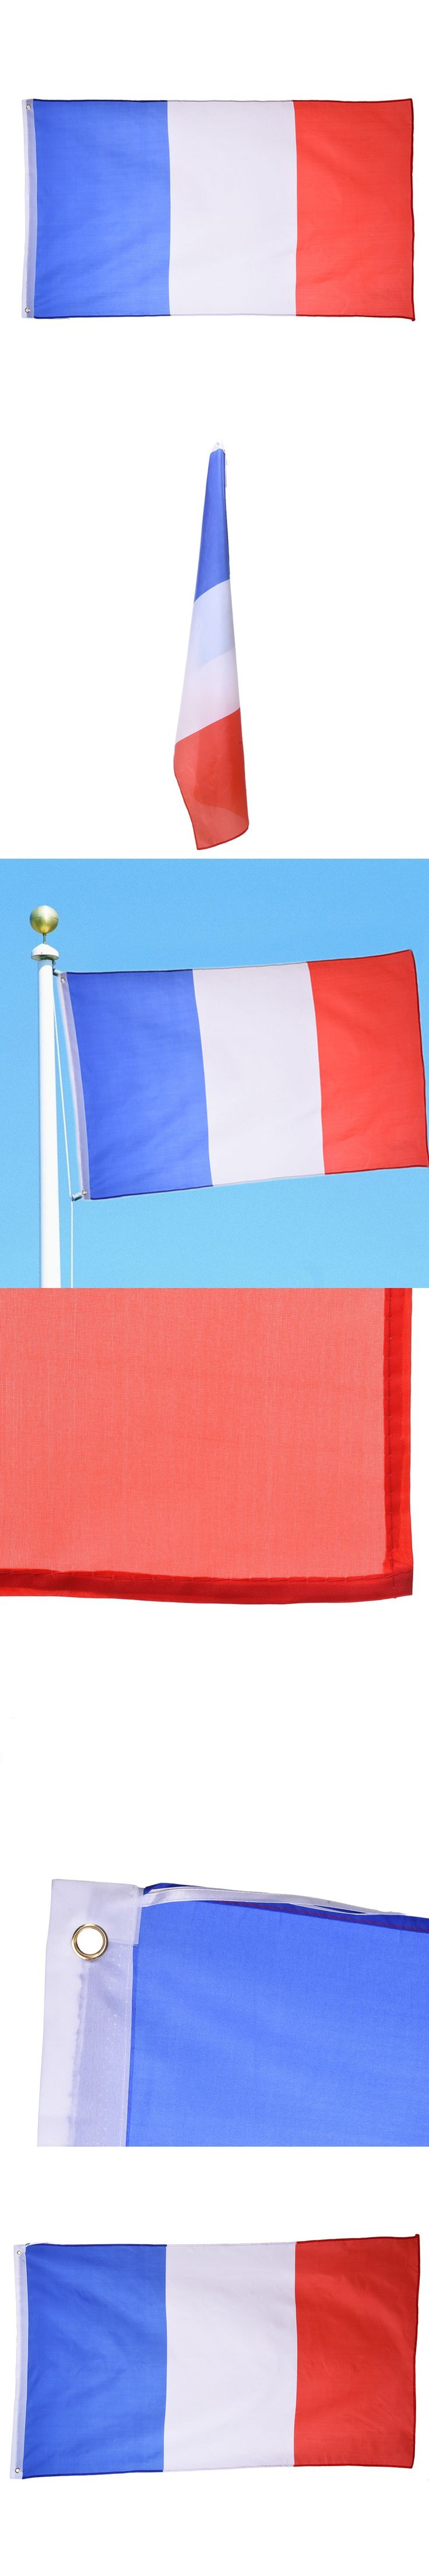 France National Flag Festival Home Decoration Office Flag Banner for Activity Parade the Olympic Games European Cup World Cup $5.52